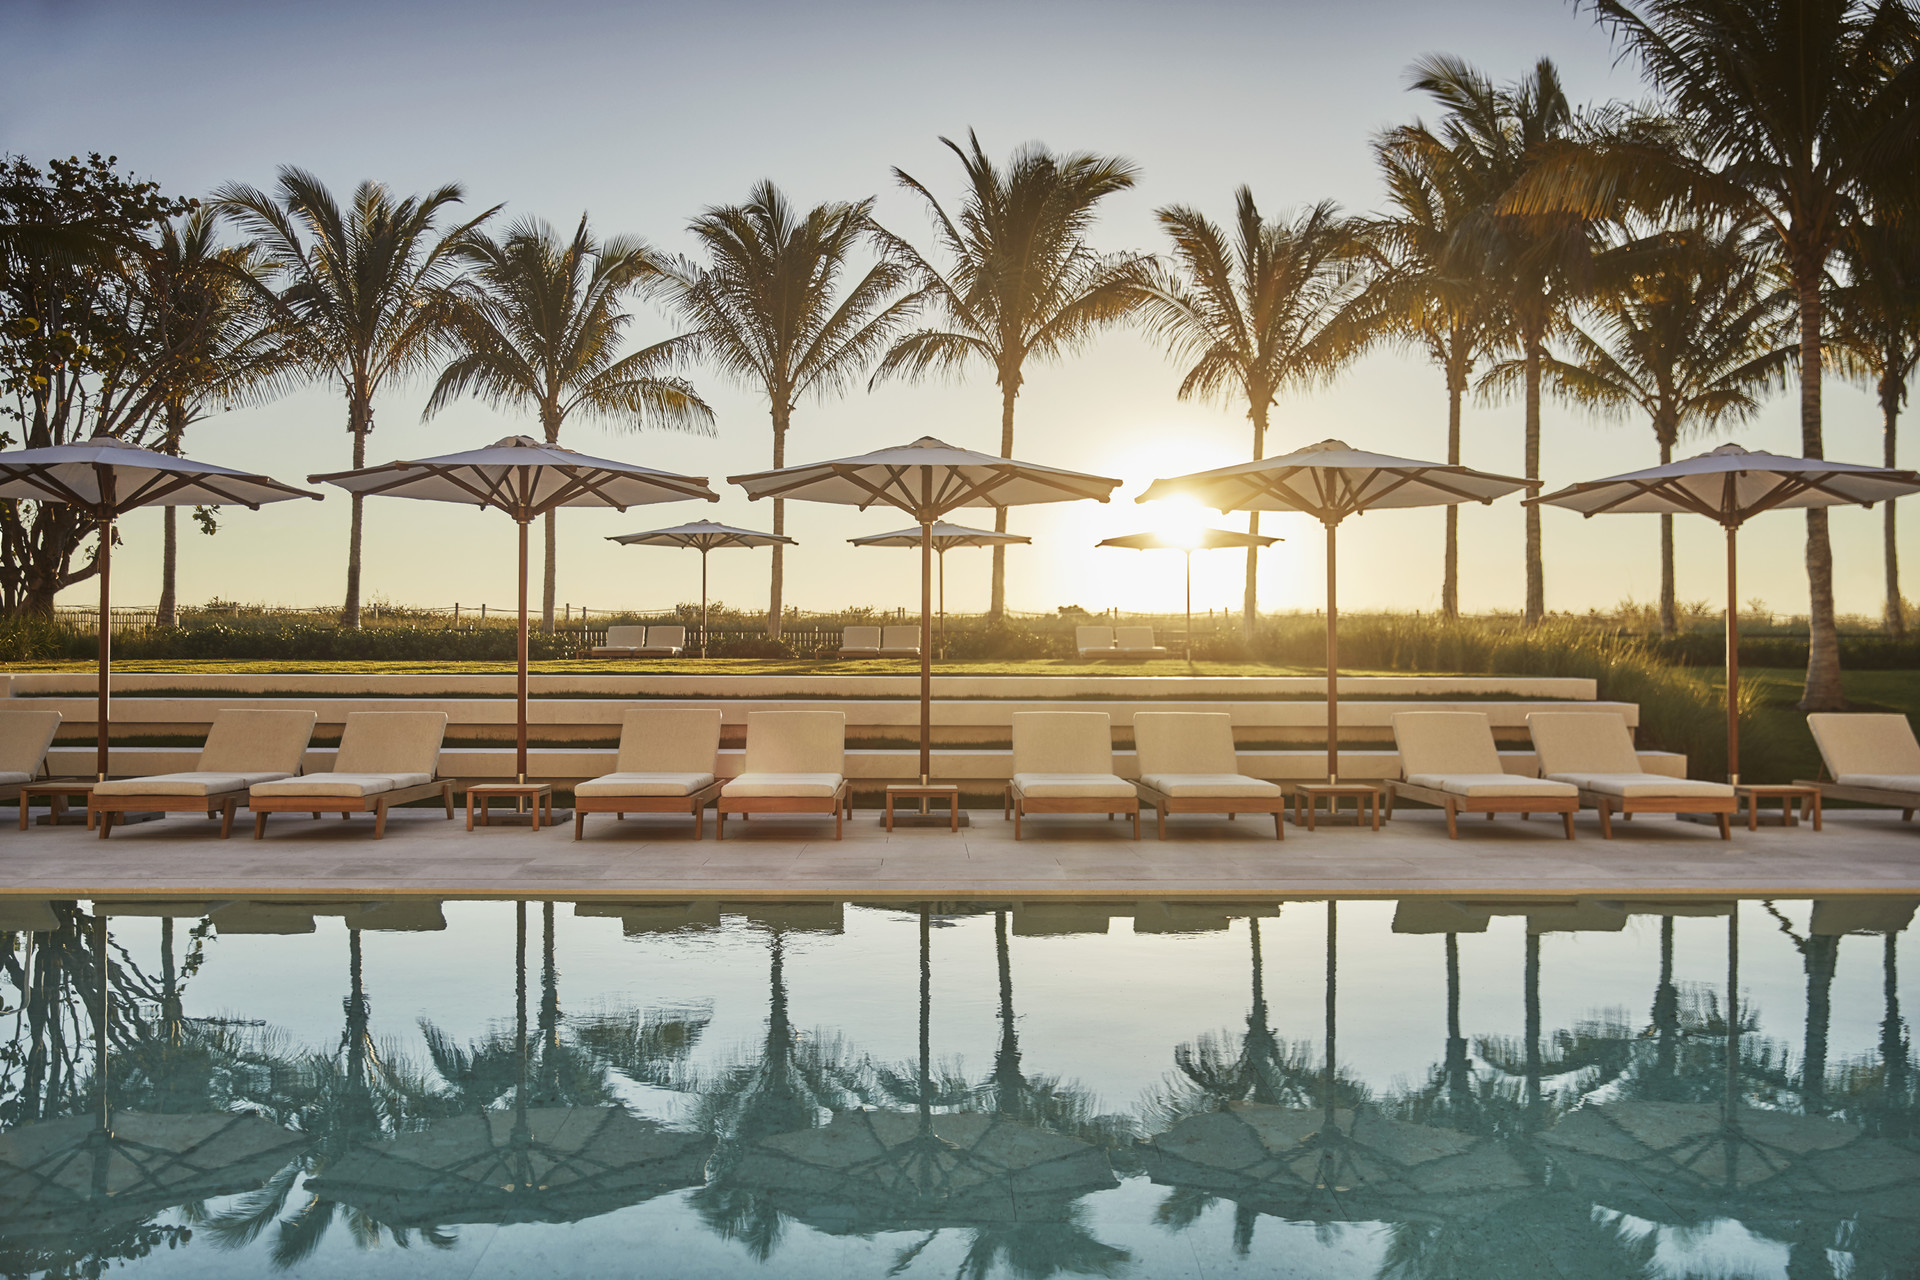 The pool at the Four Seasons Hotel at the Surf Club. Photograph by Christian Horan. All images courtesy of the hotels